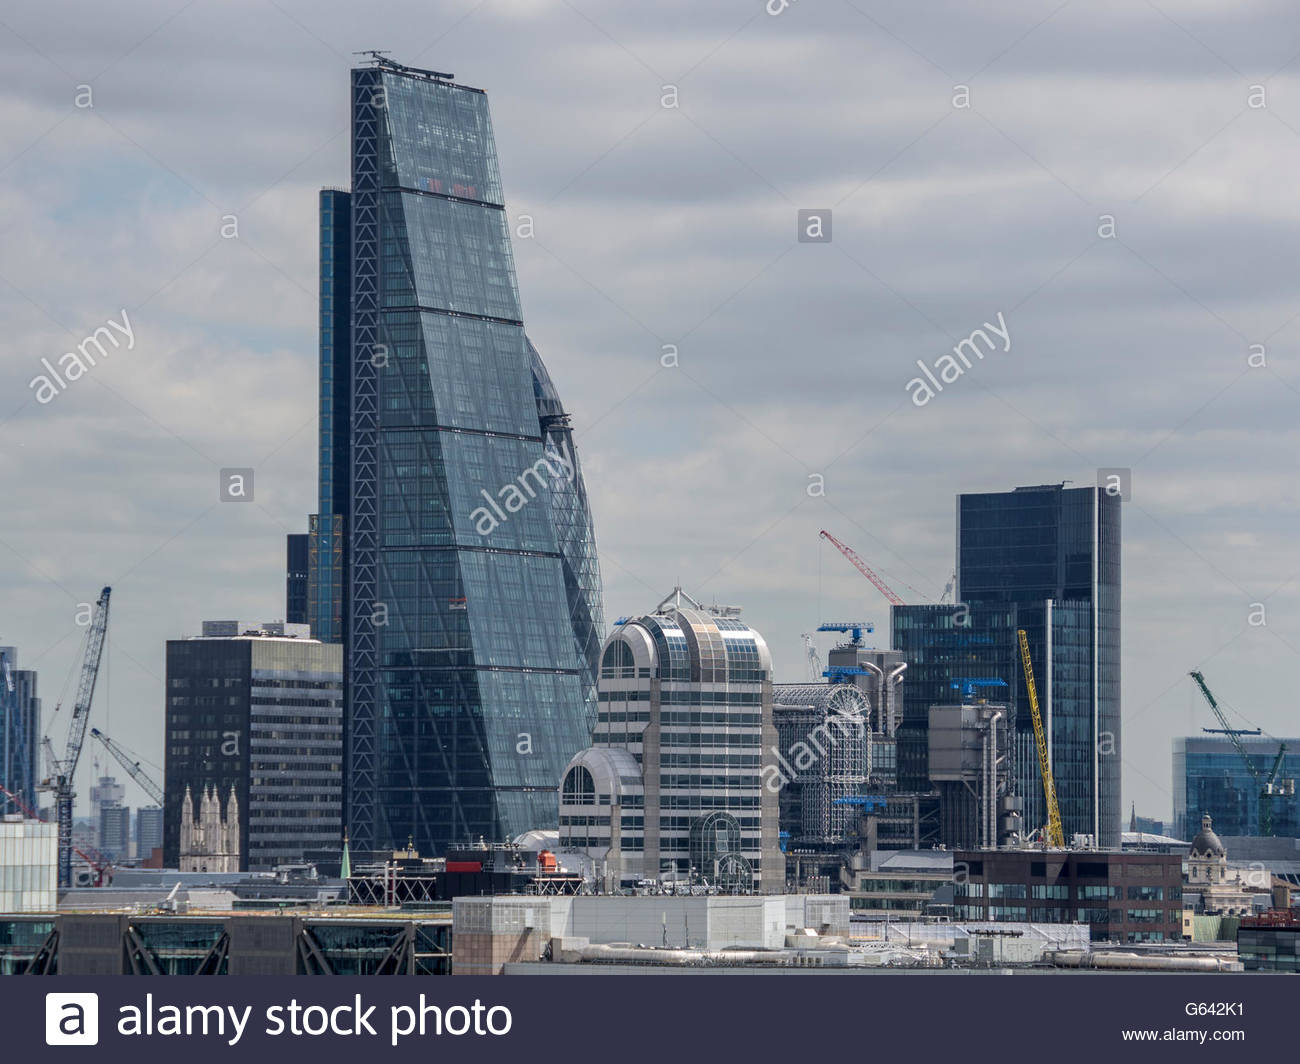 The Cheesegrater - 122 Leadenhall Street - Stock Image